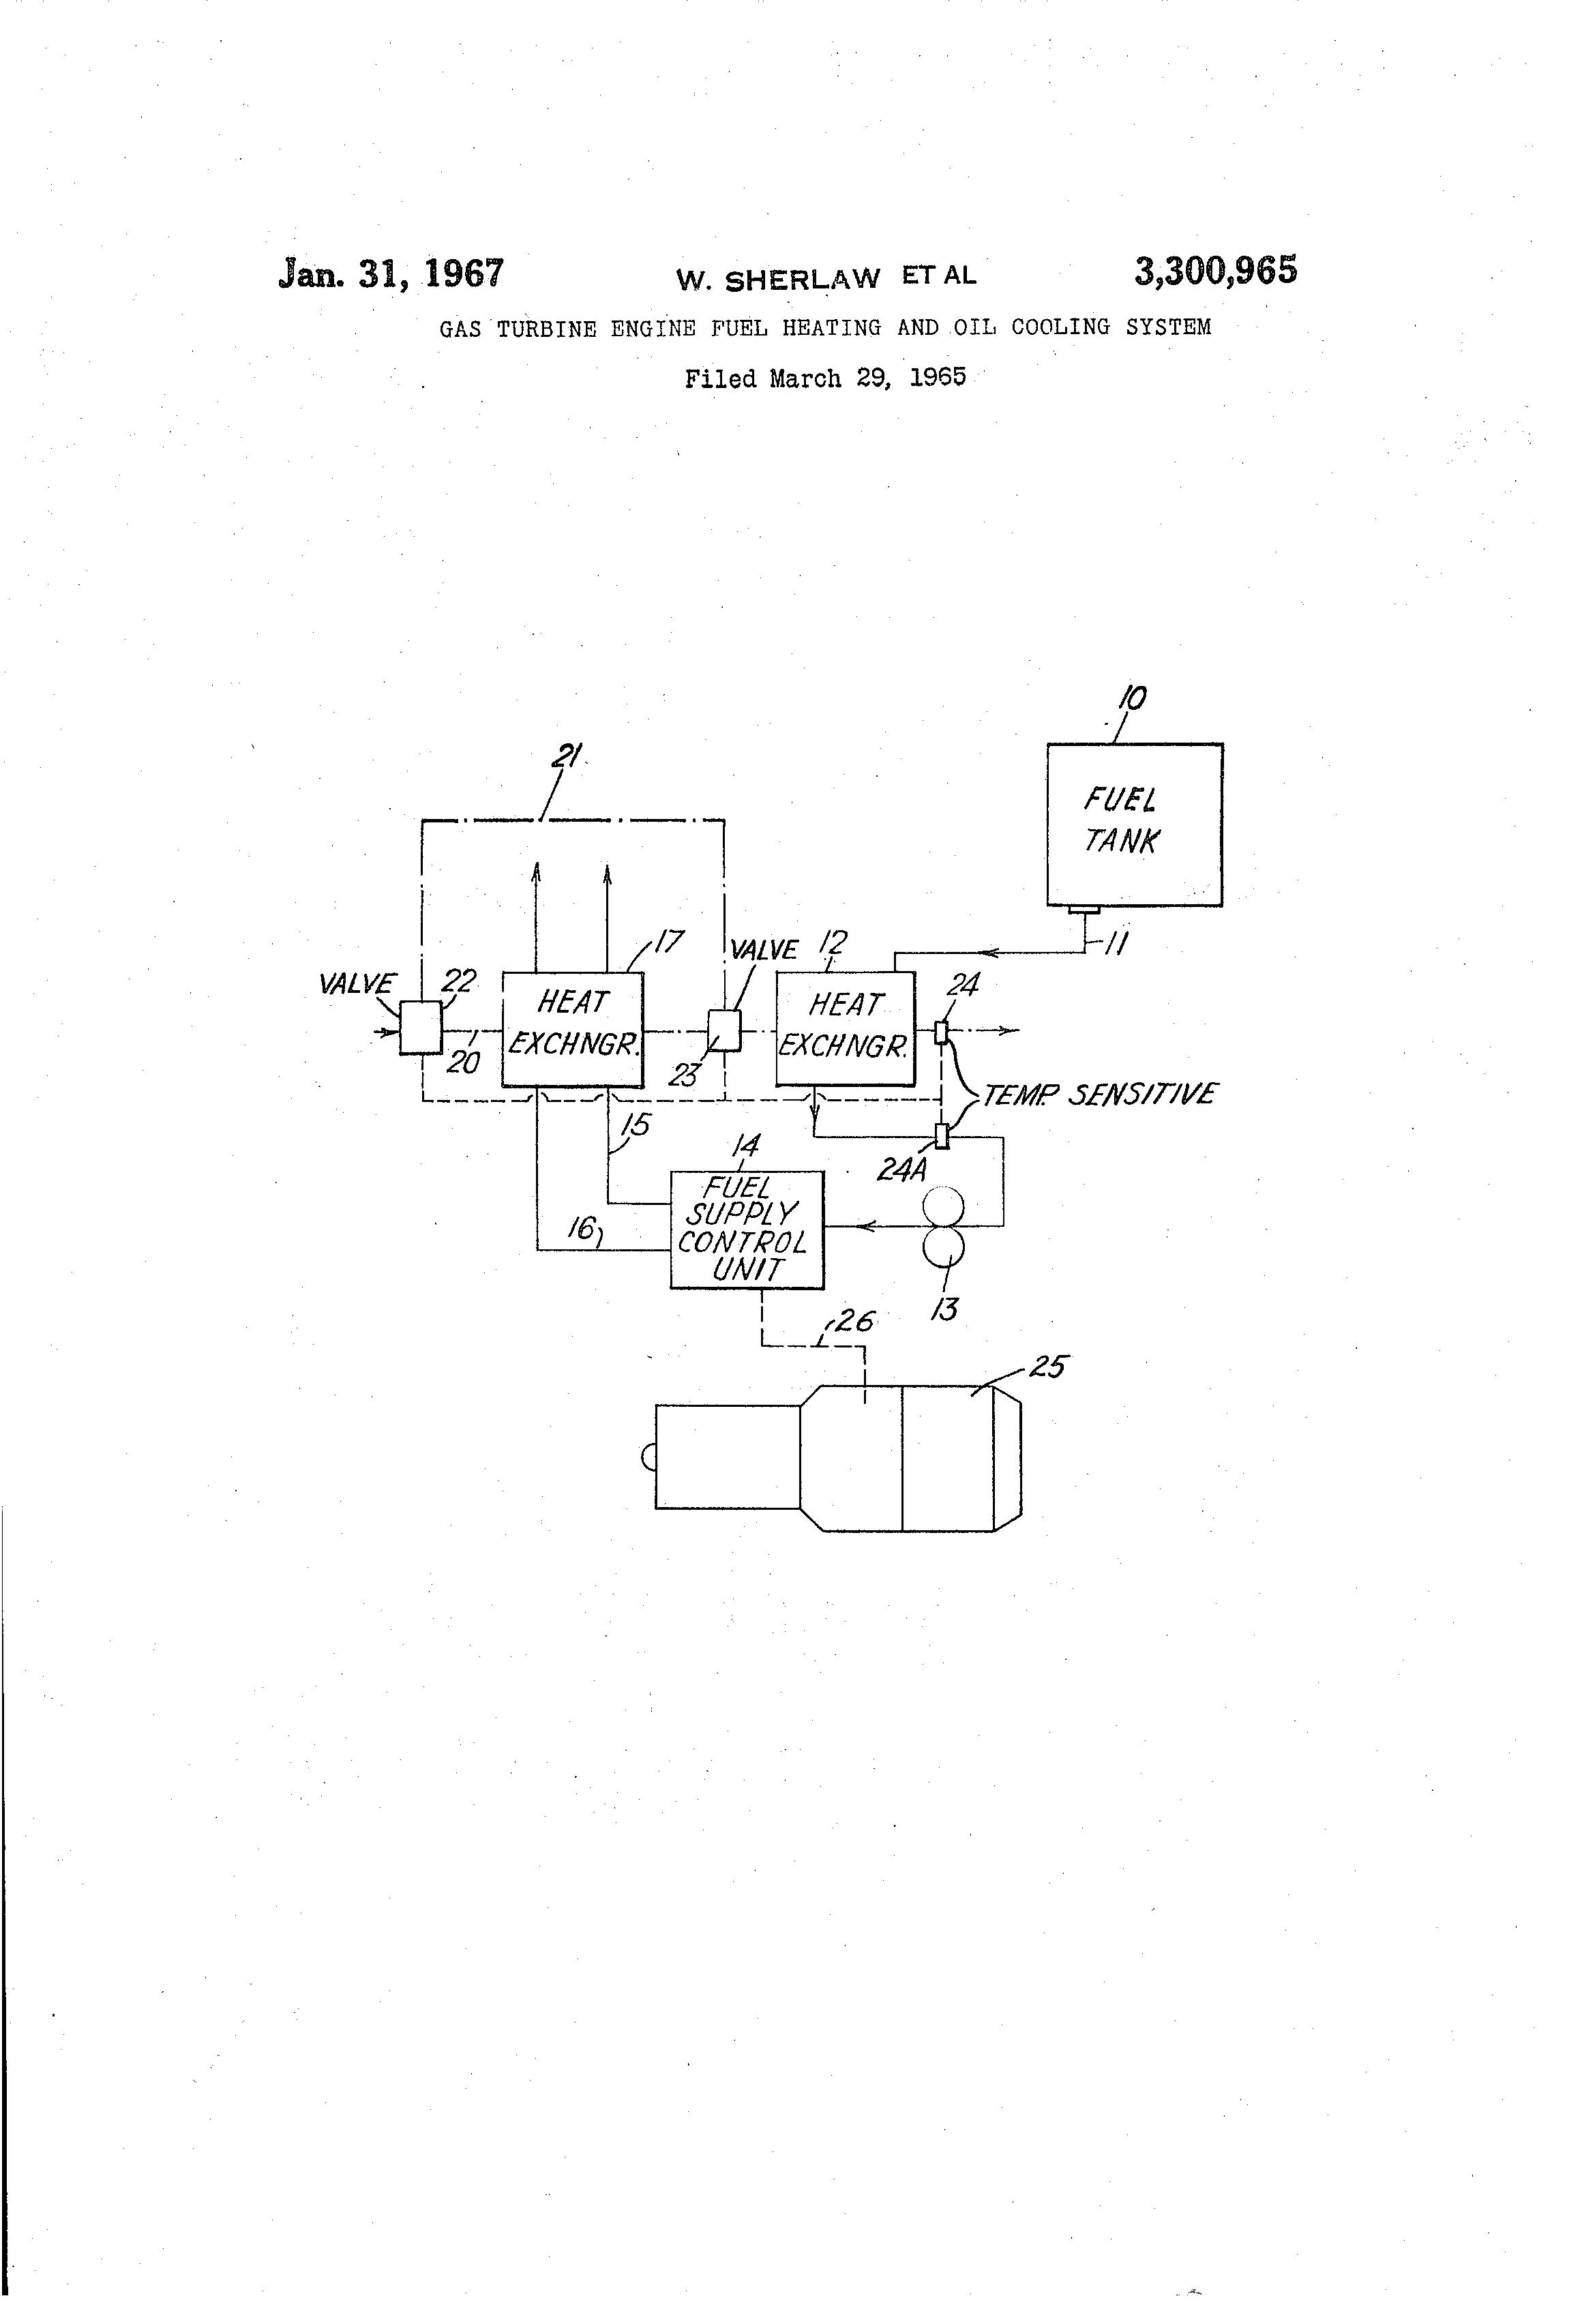 Patent US Gas turbine engine fuel heating and oil cooling